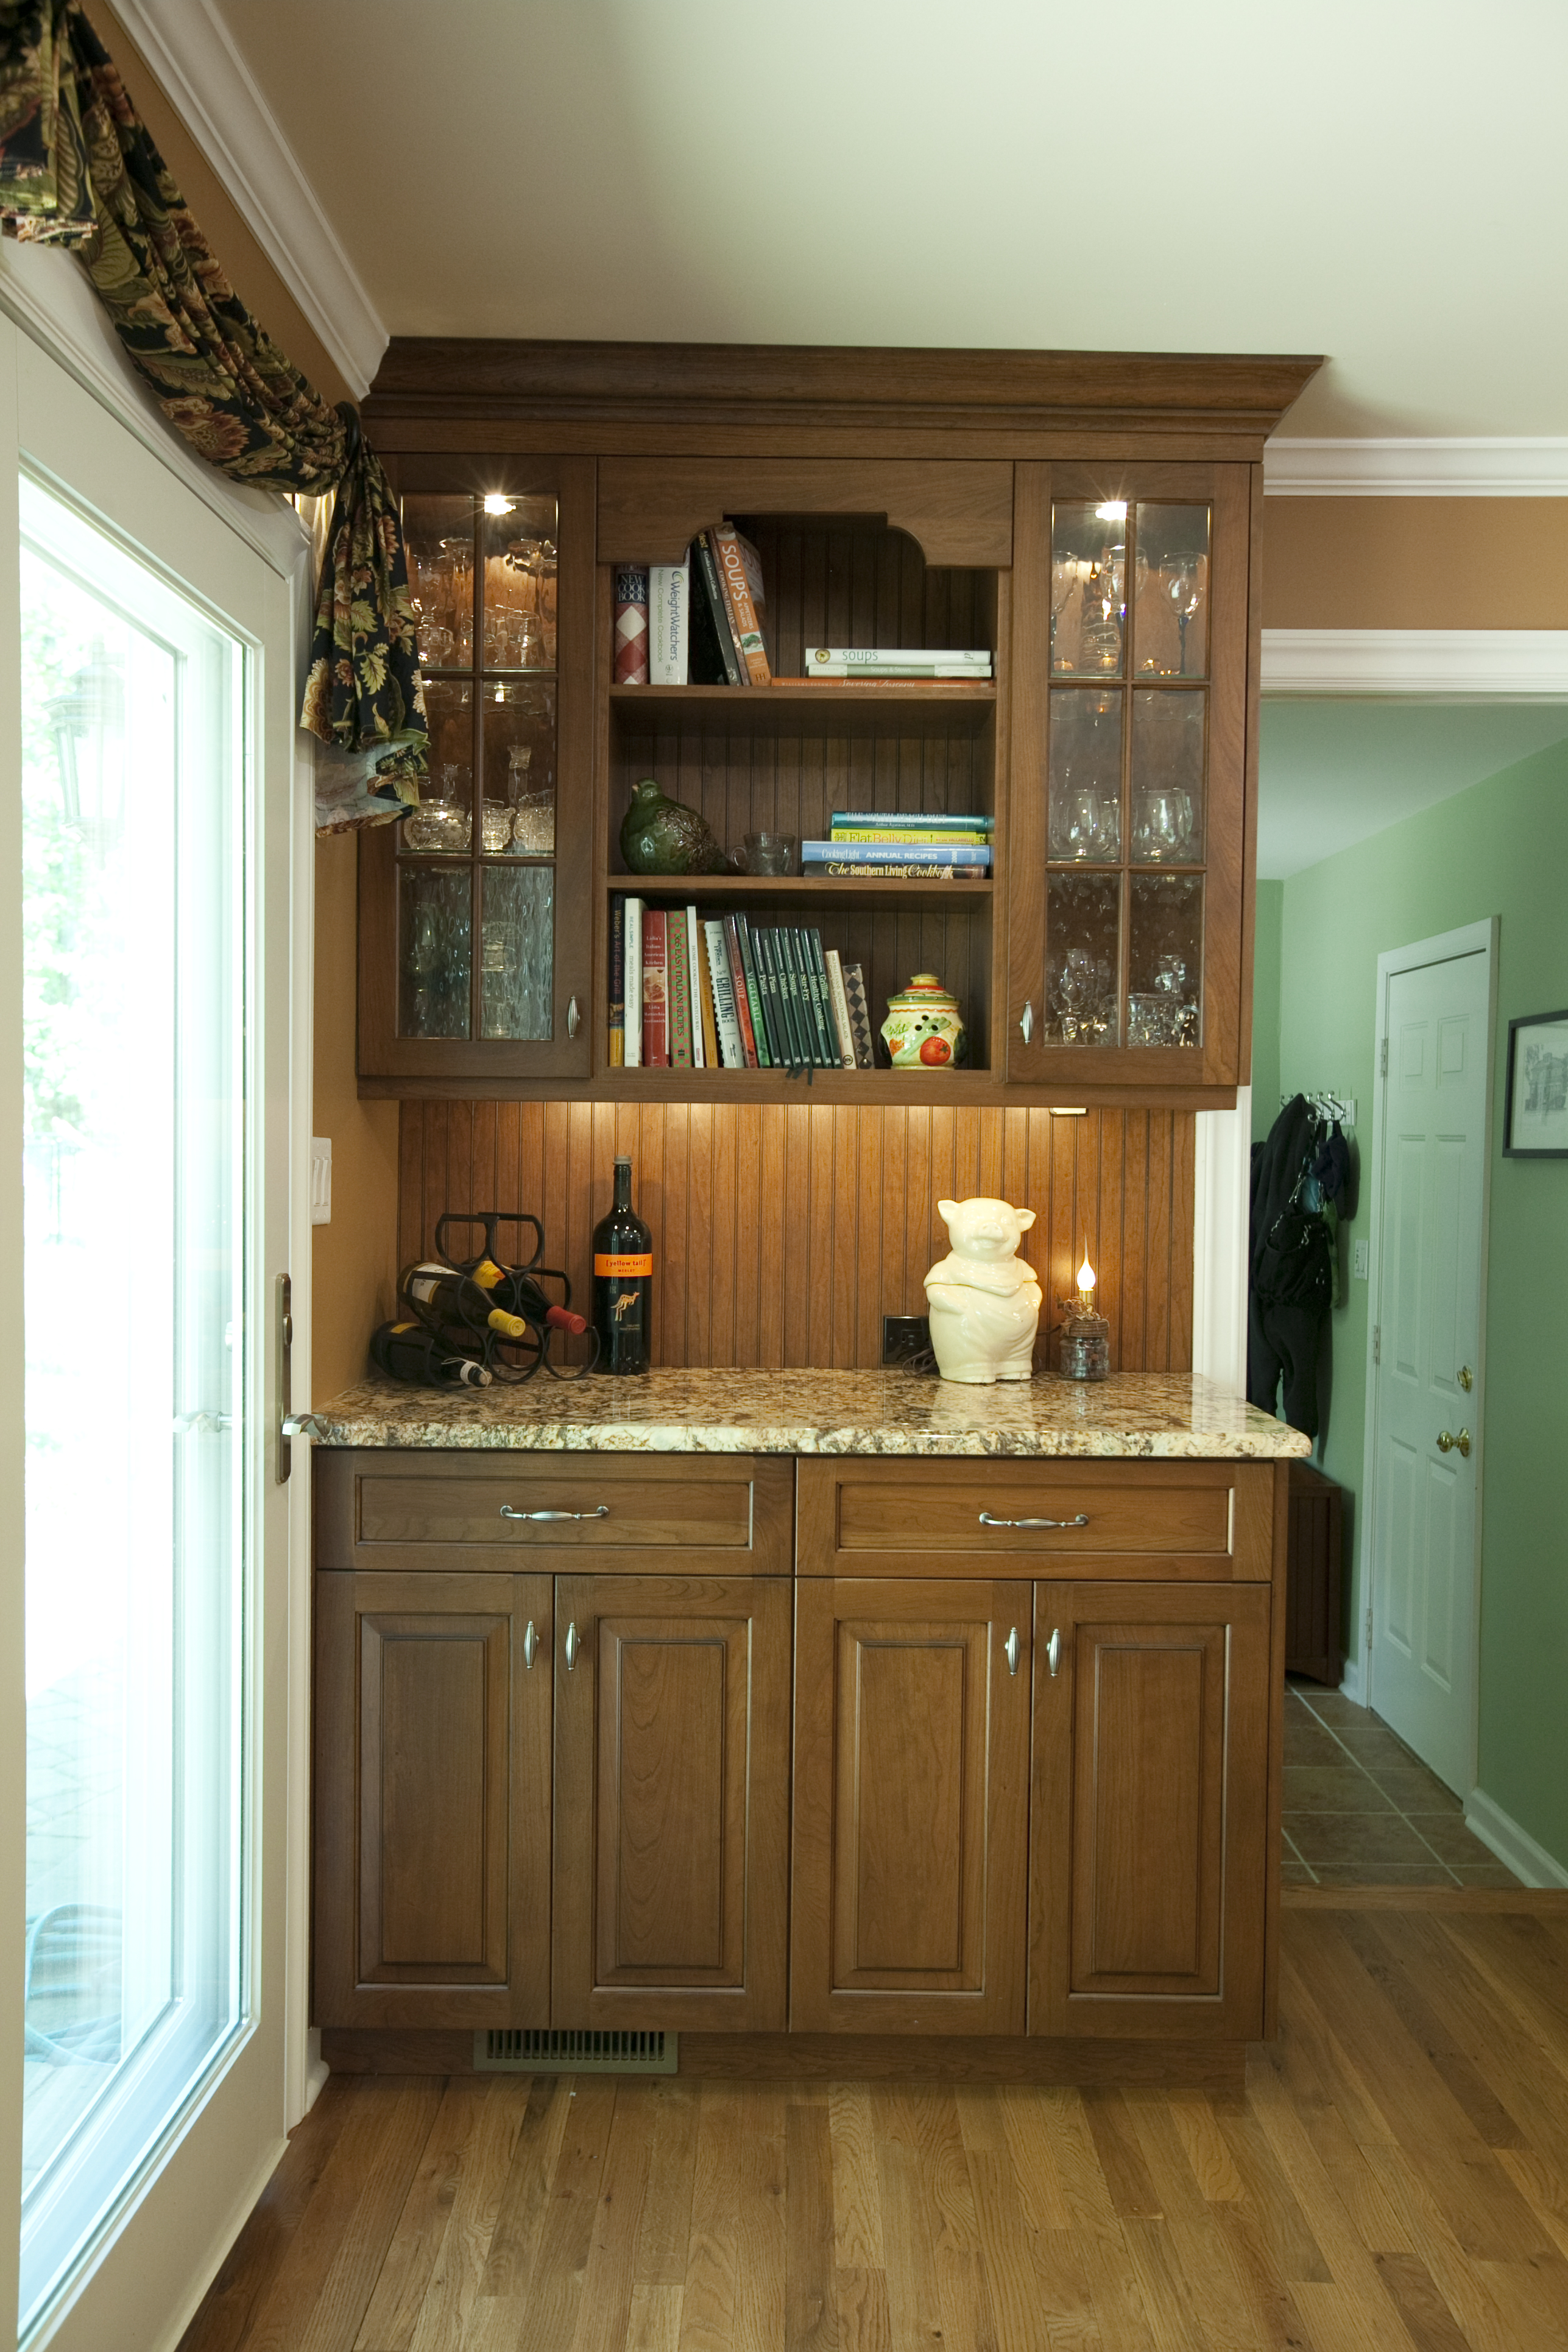 Built In Hutch Idea Solid Wood Cabinets With Wall Bar Units